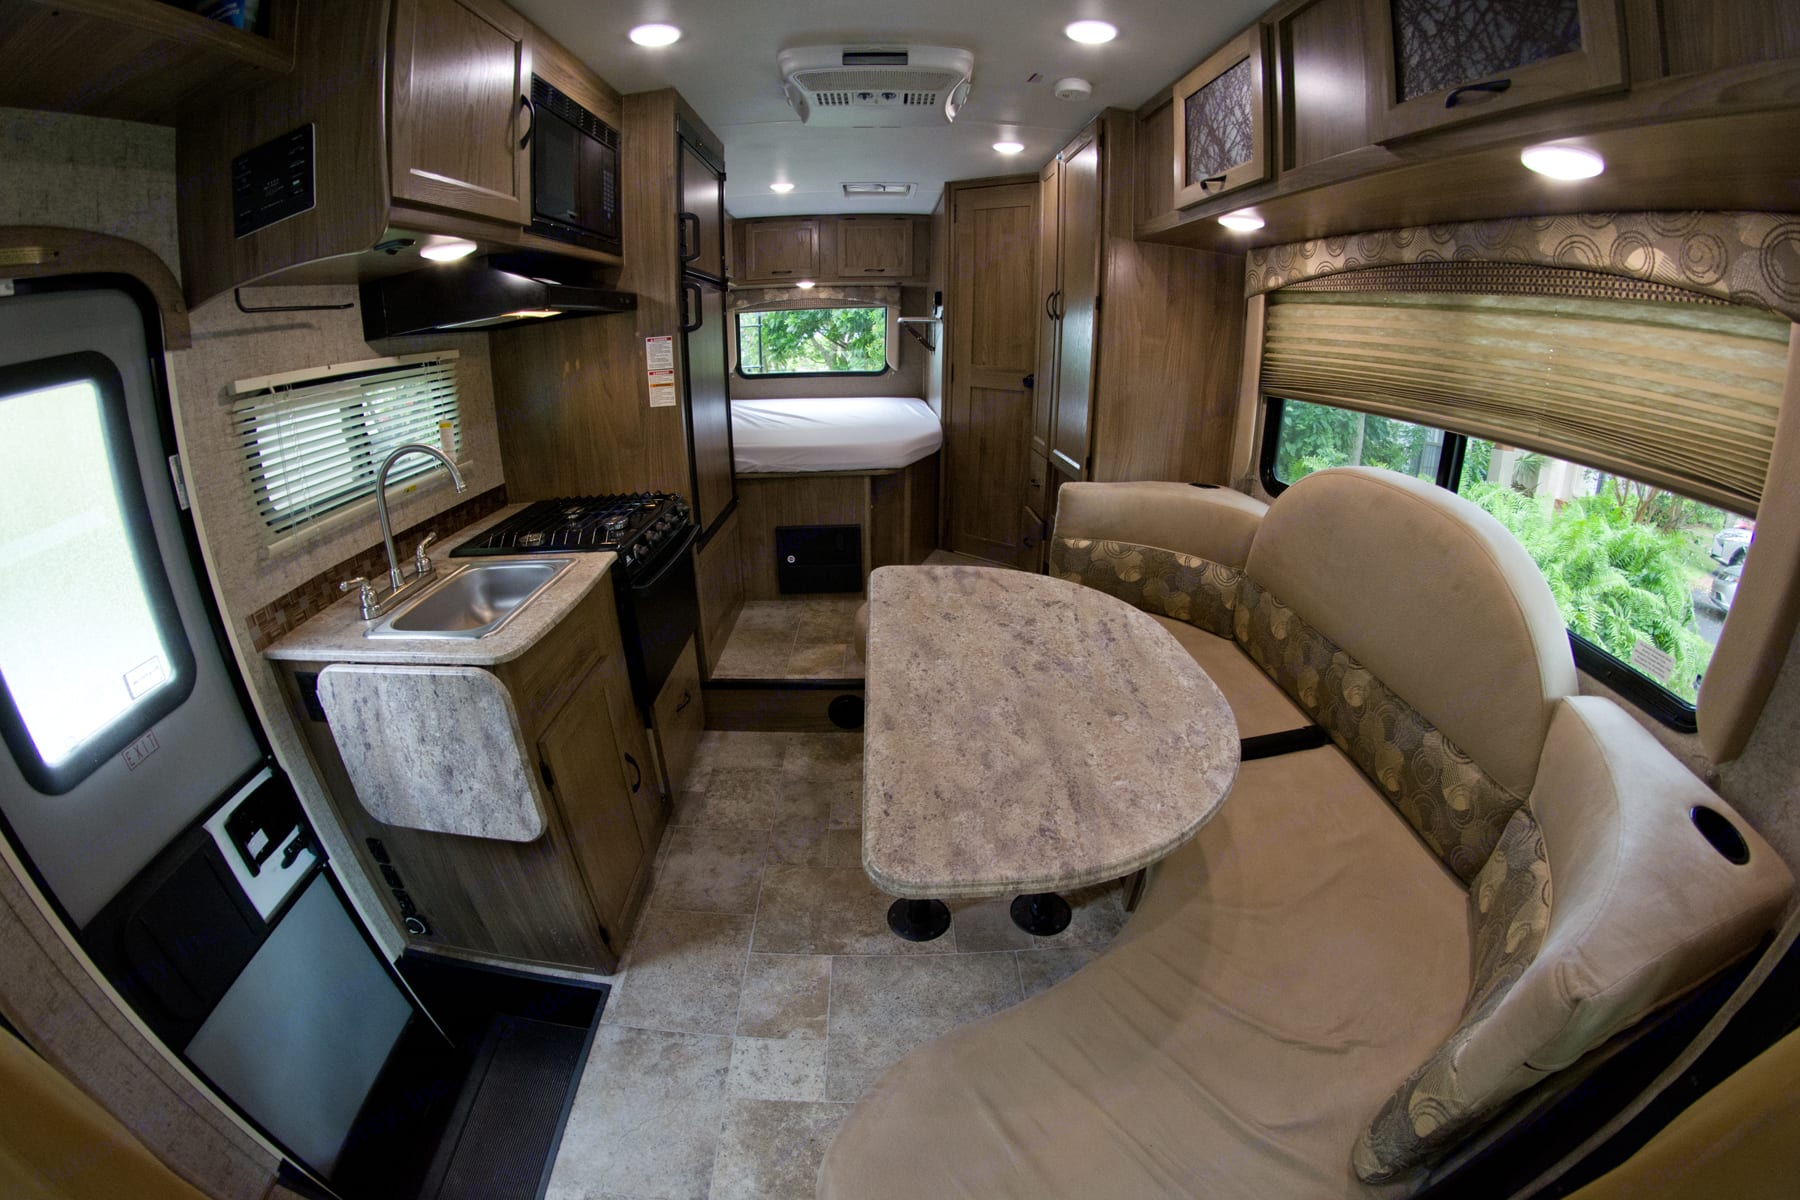 Dinette, Kitchen entry to the Class C Camper. In the far end bed near walk in shower, bathroom sink and toilet. The wall to the left has another flat screen DVD TV Player.. Coachmen Freelander 2017